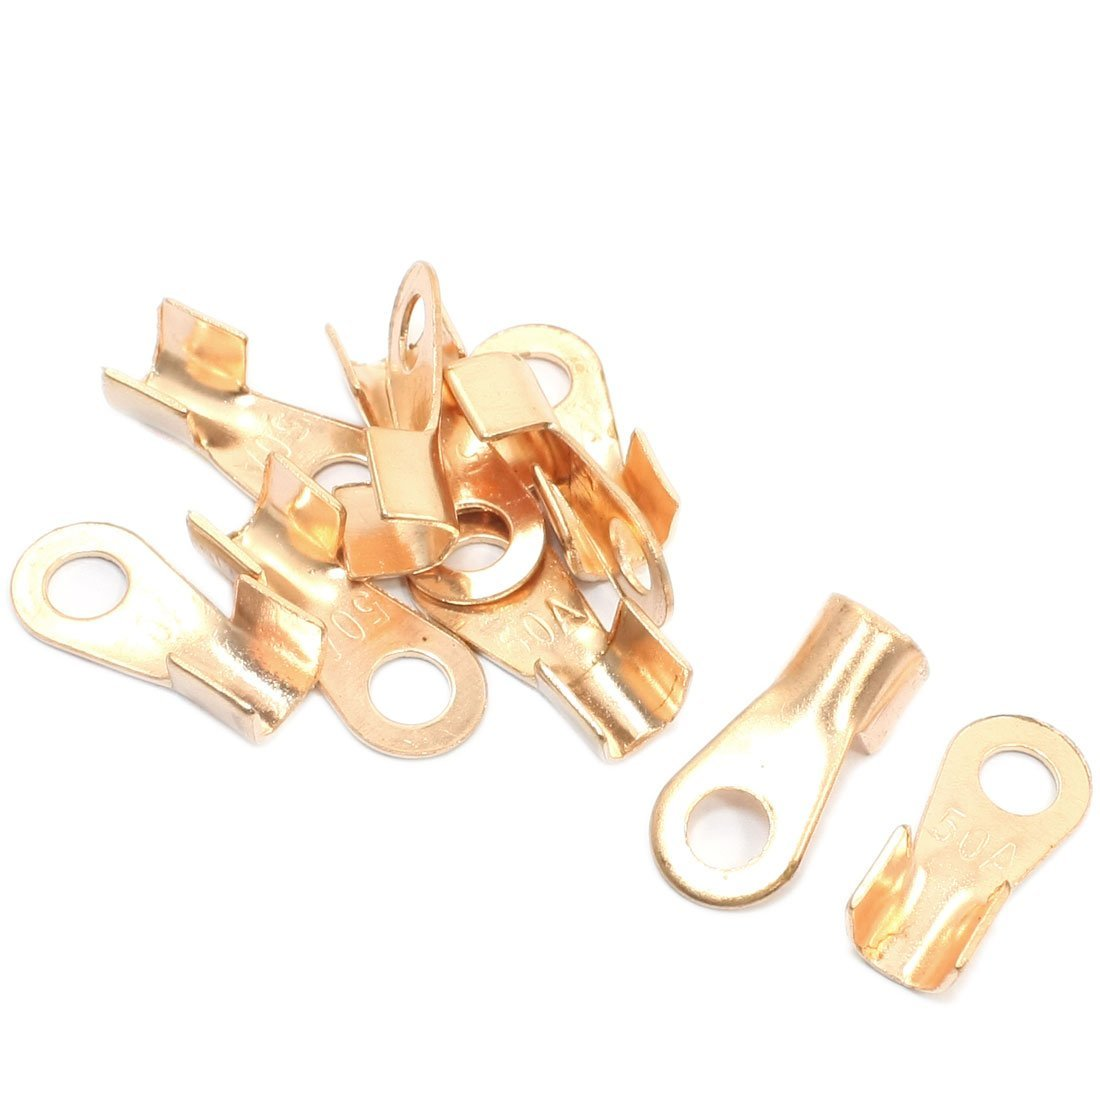 10pcs 50A Ring Tongue Cable Wiring Welding Copper Connector Terminal